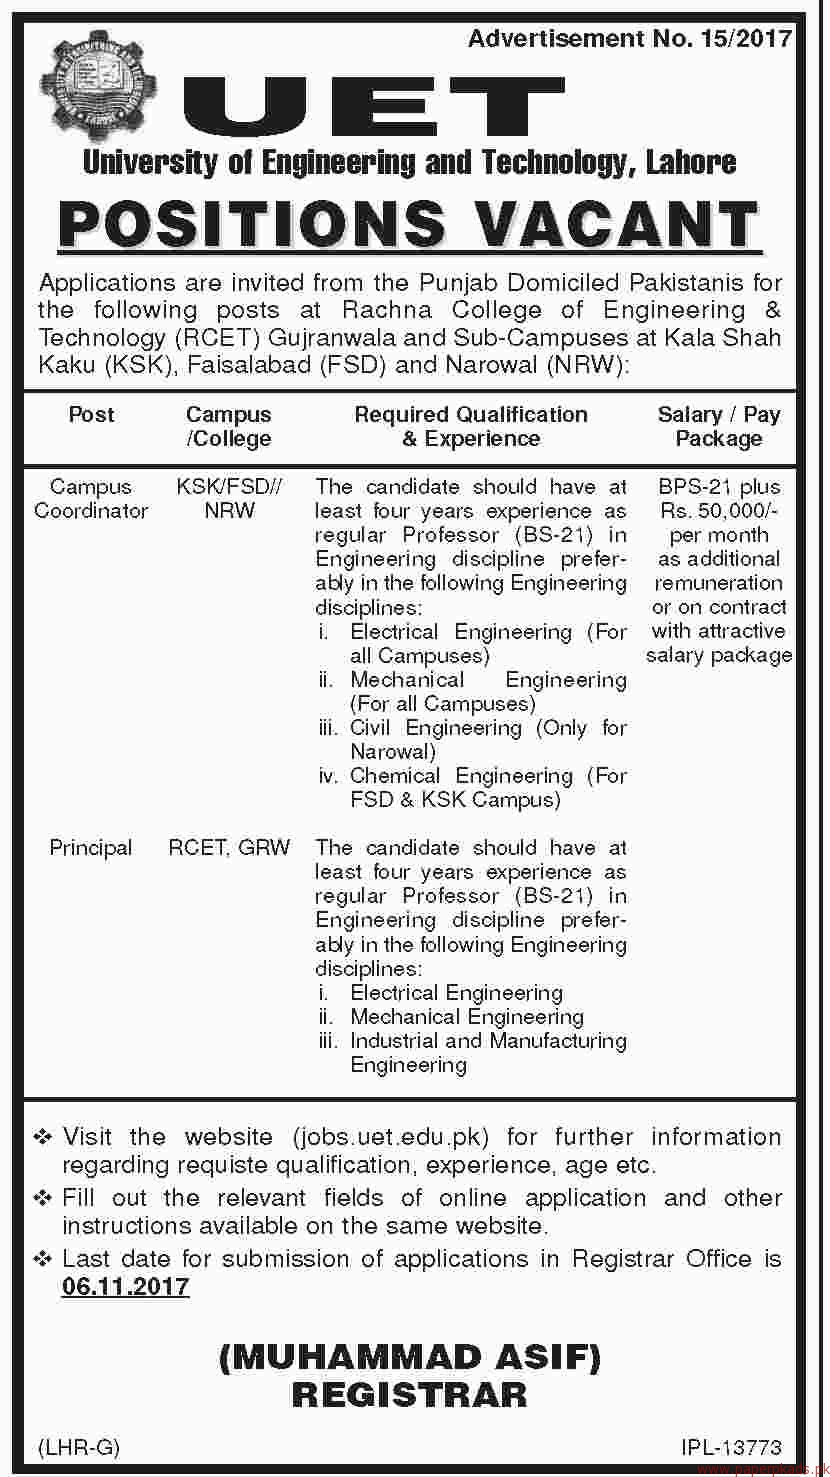 University of Engineering & Technology Lahore Jobs 2017